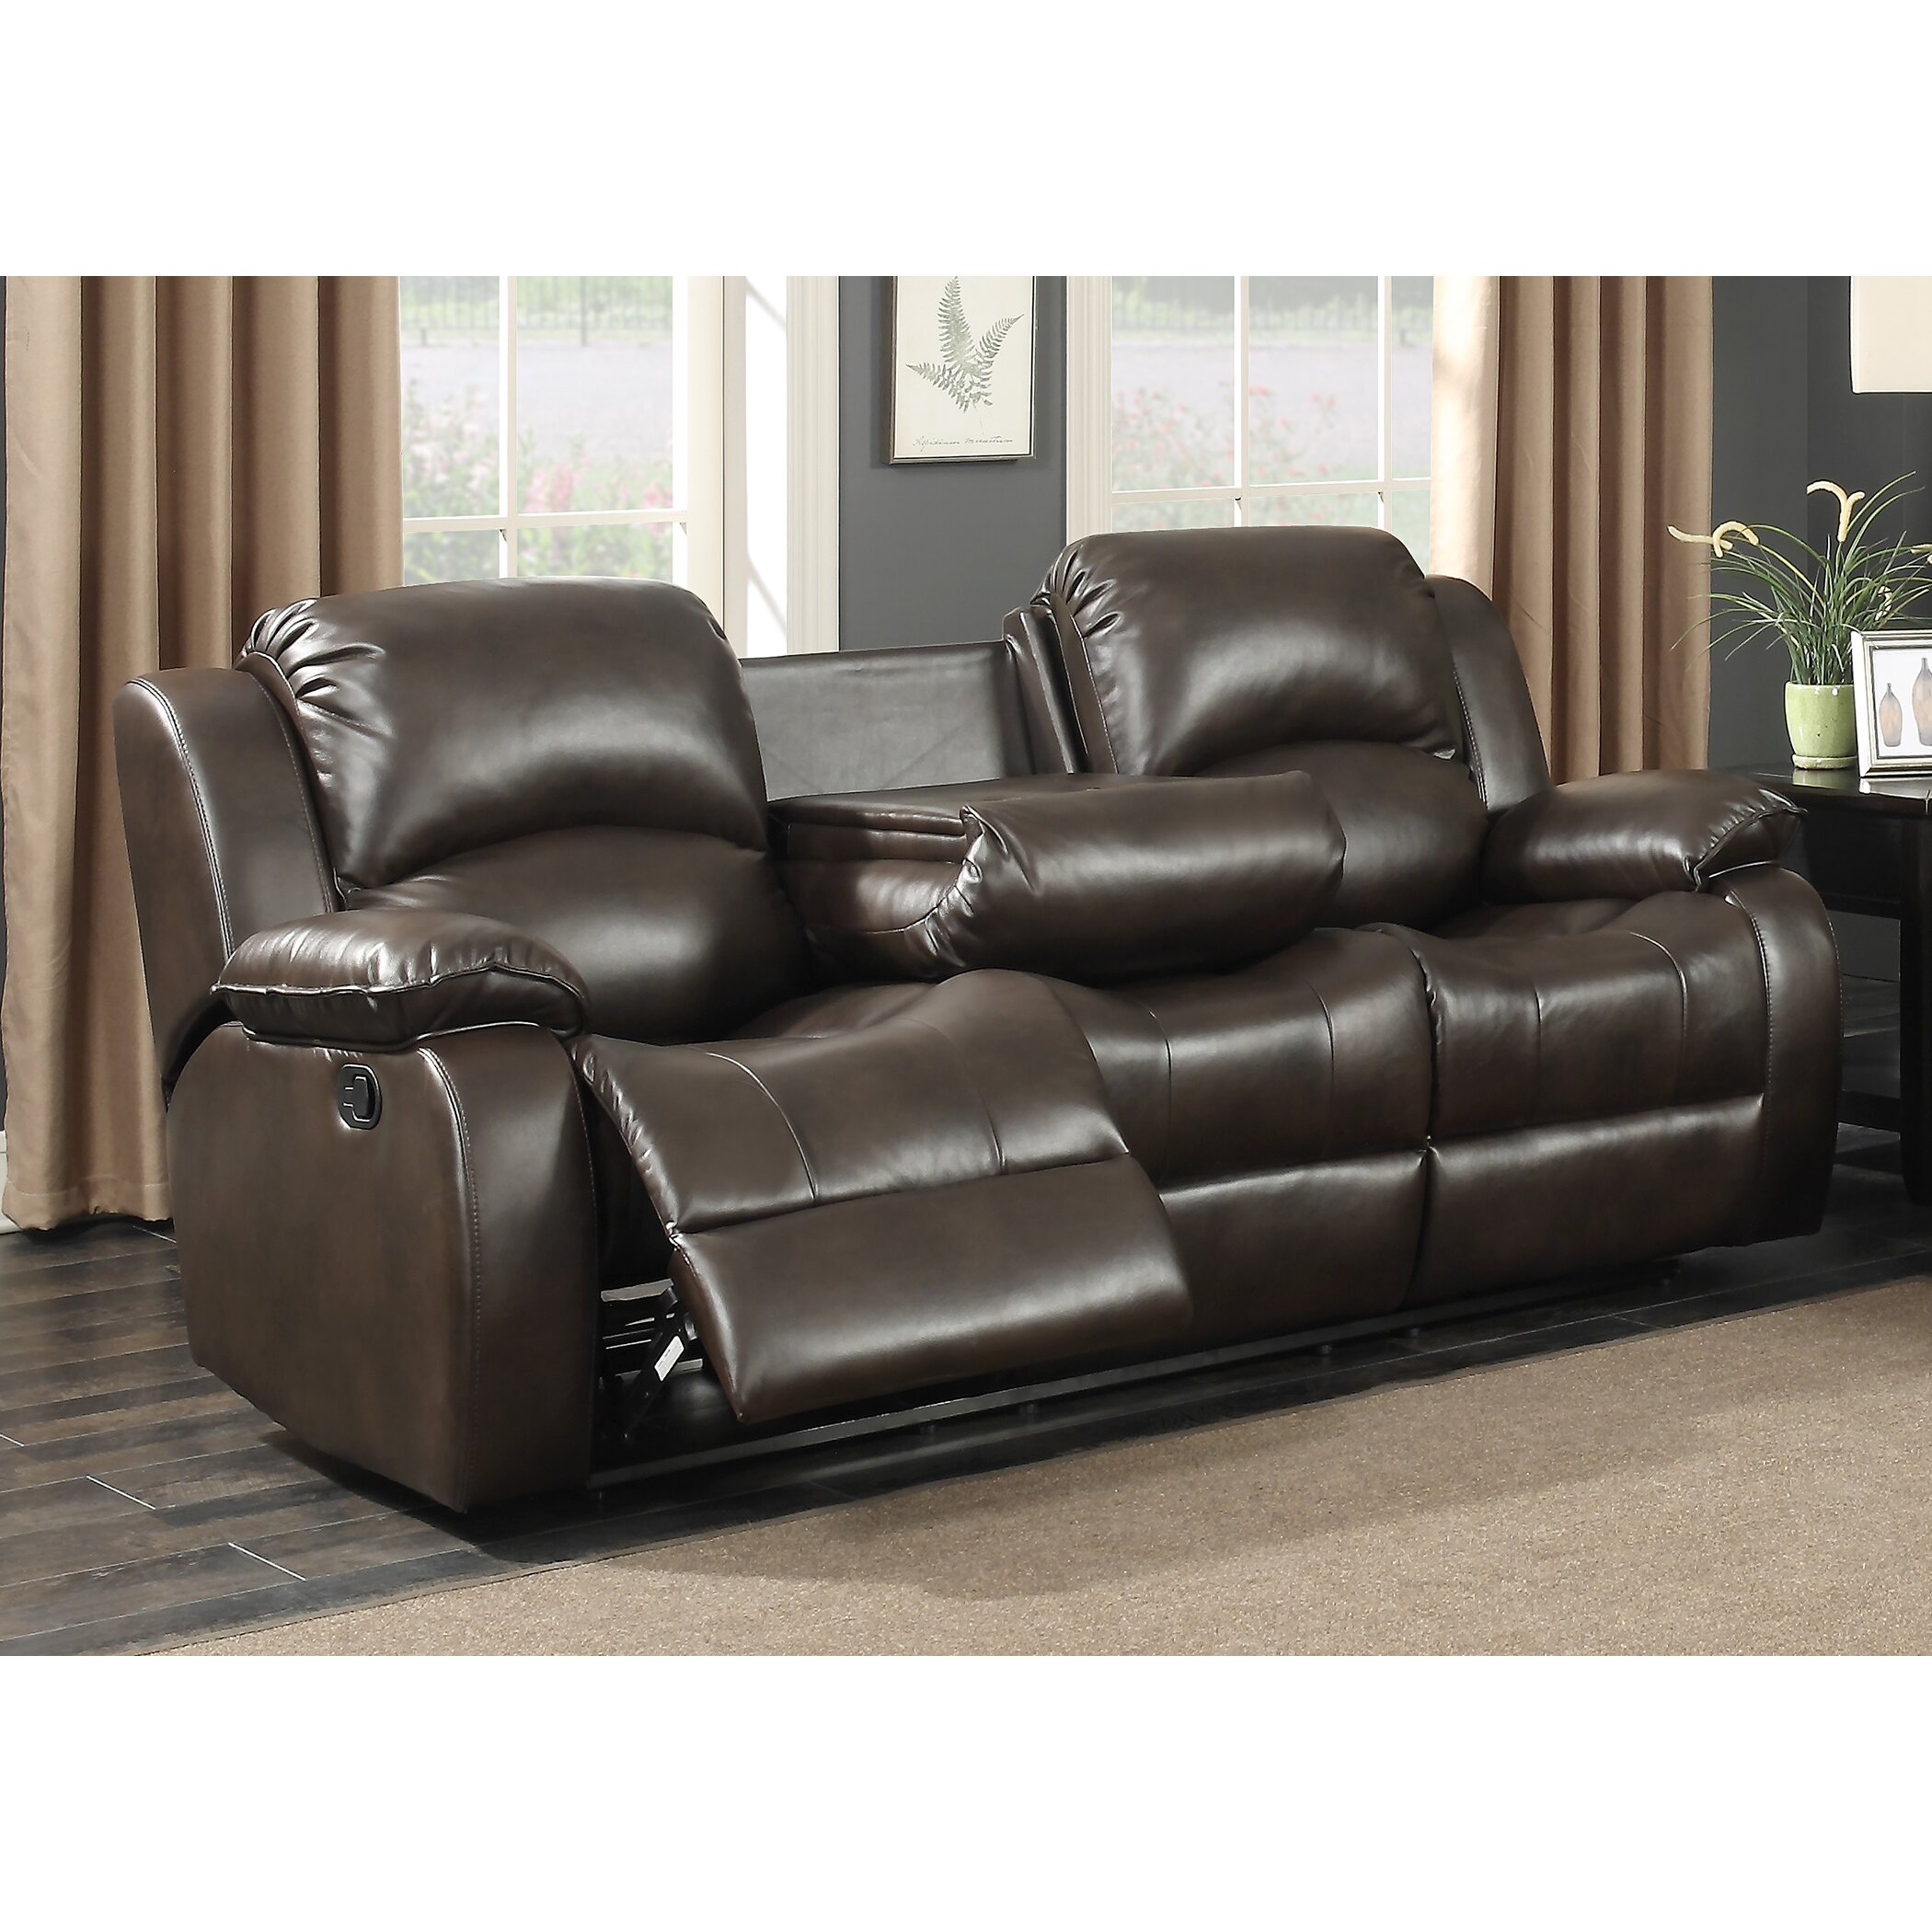 B751 Transitional Reclining Sectional With Storage Console: AC Pacific Samara Transitional Reclining Sofa